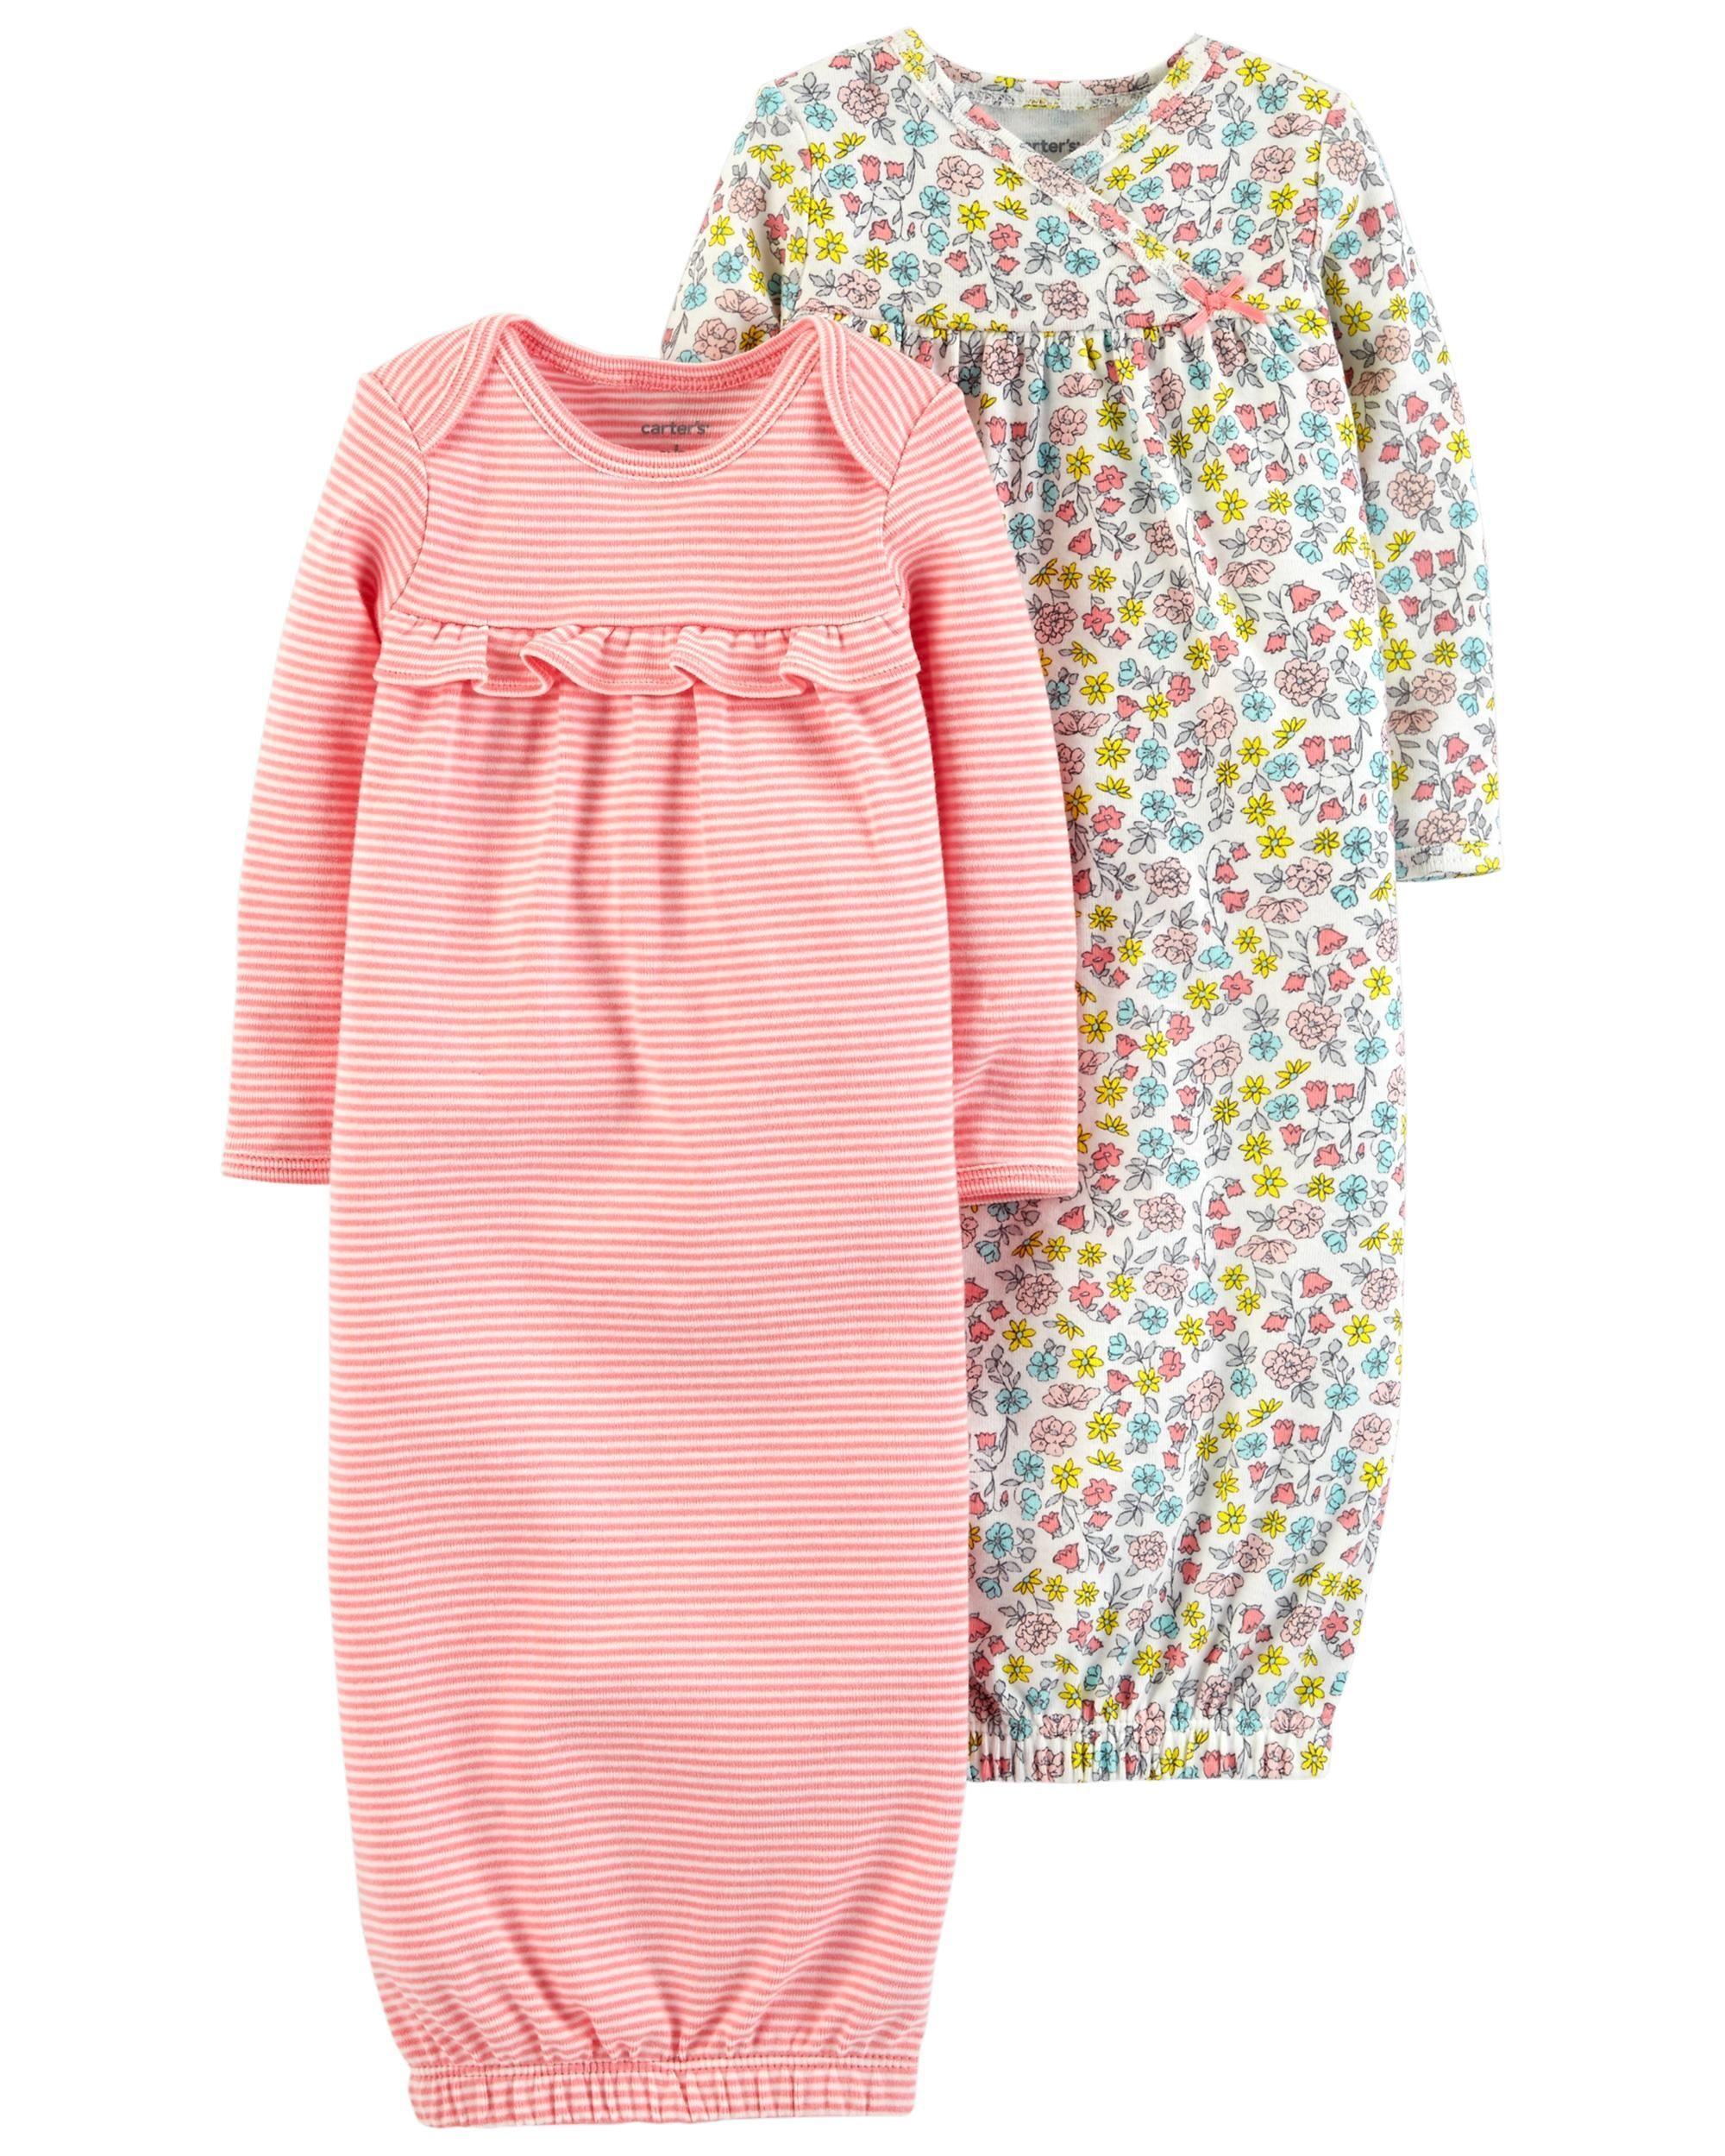 69c530707 2-Pack Babysoft Sleeper Gowns | Matthyew&Rileigh | Carters baby girl ...